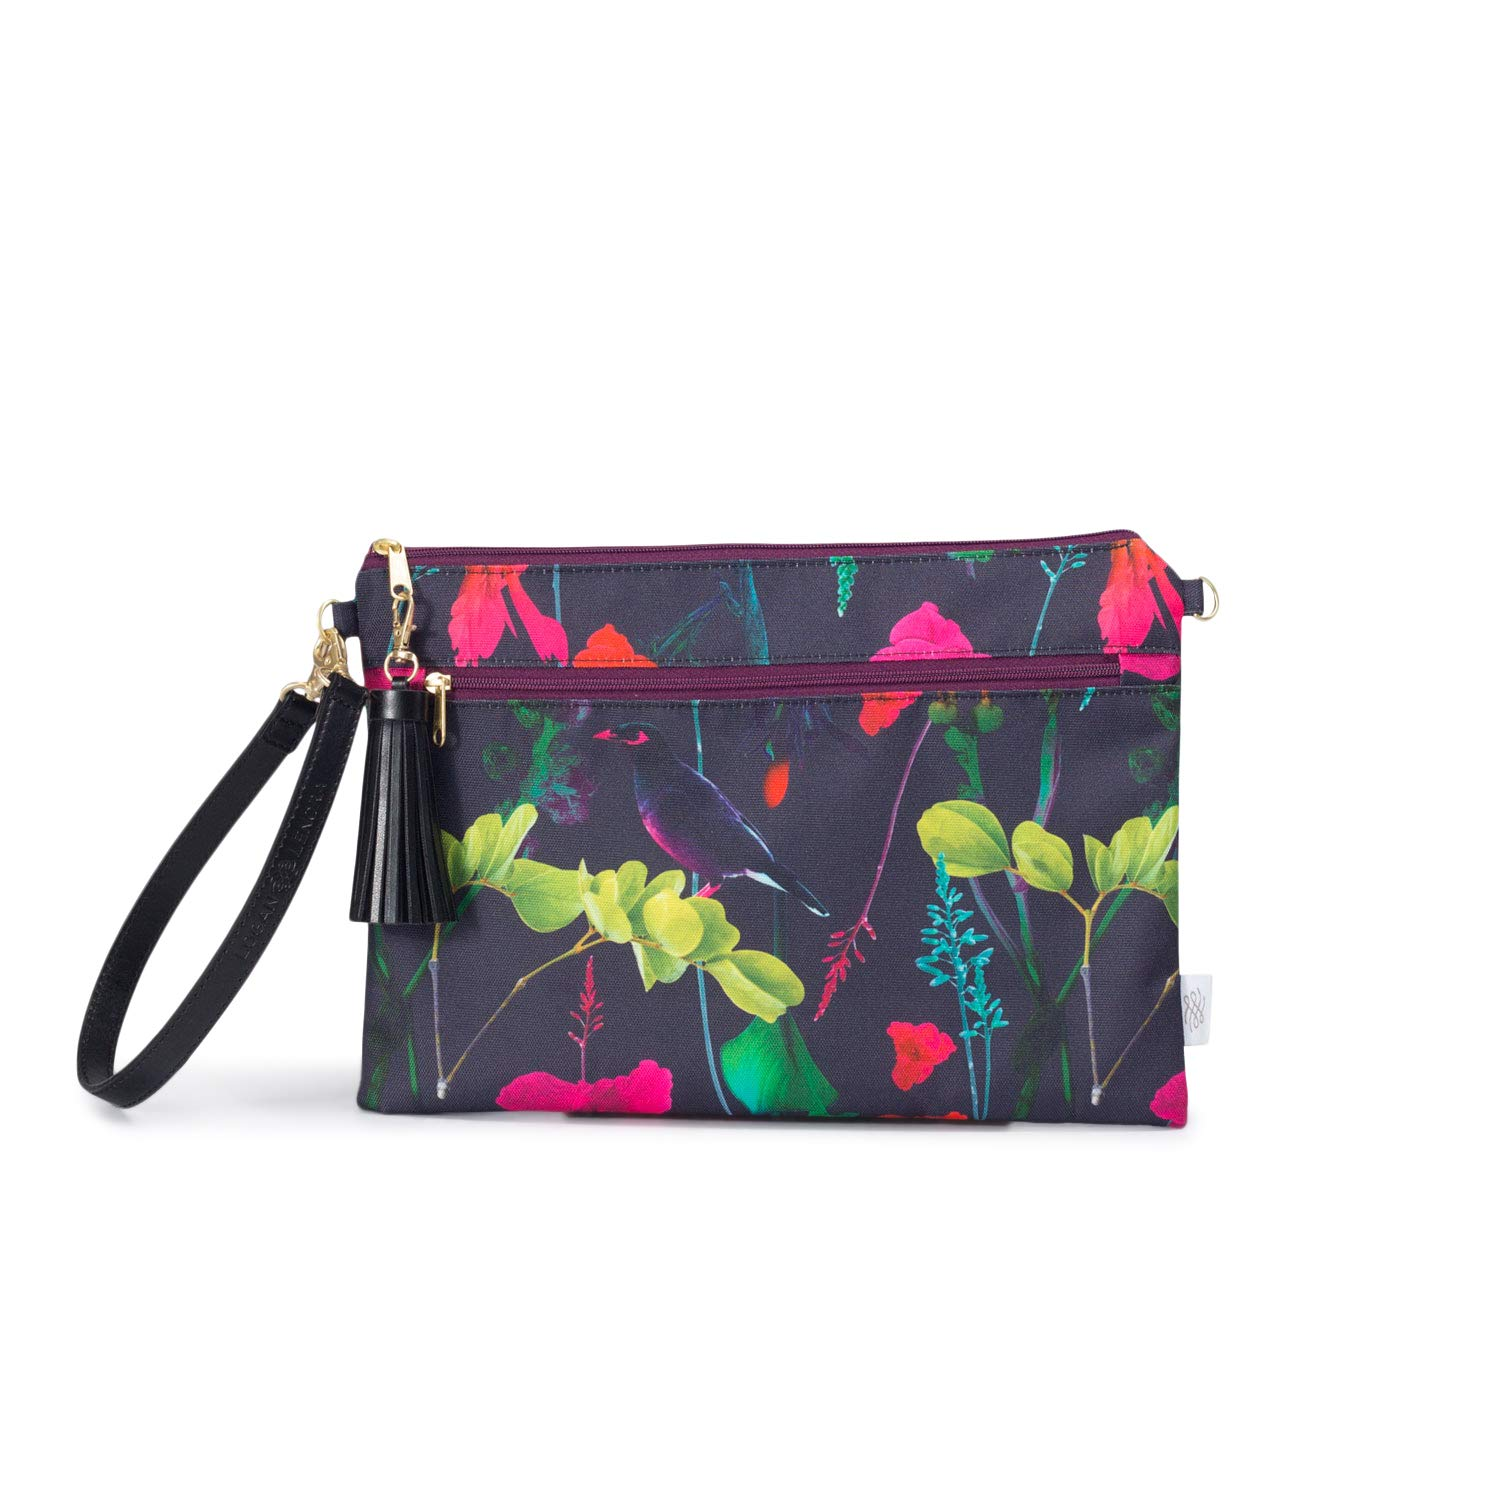 Waterproof Wristlet Clutch - Diaper Clutch with Front Dry Pocket, Cloth Diaper Wet Bag, Small Diaper Bag, Wet Wipes Case or Carrier - Made in USA (Botanica)